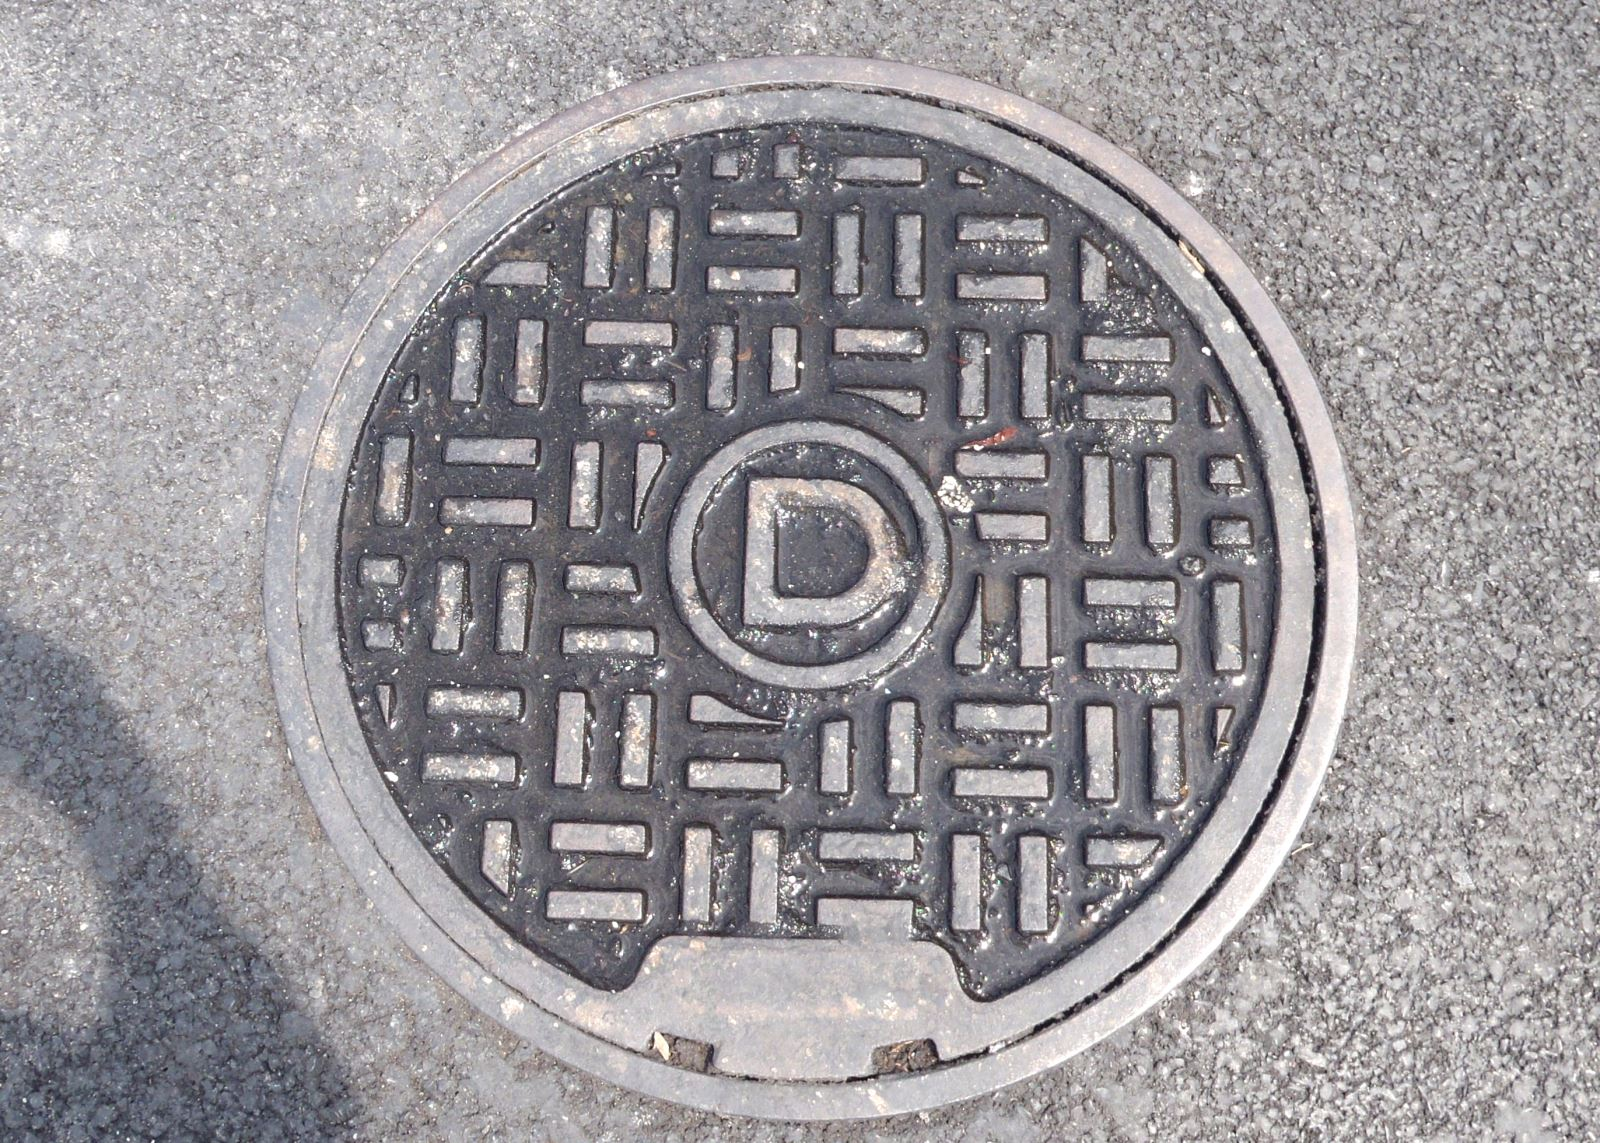 Image of a flow splitter manhole